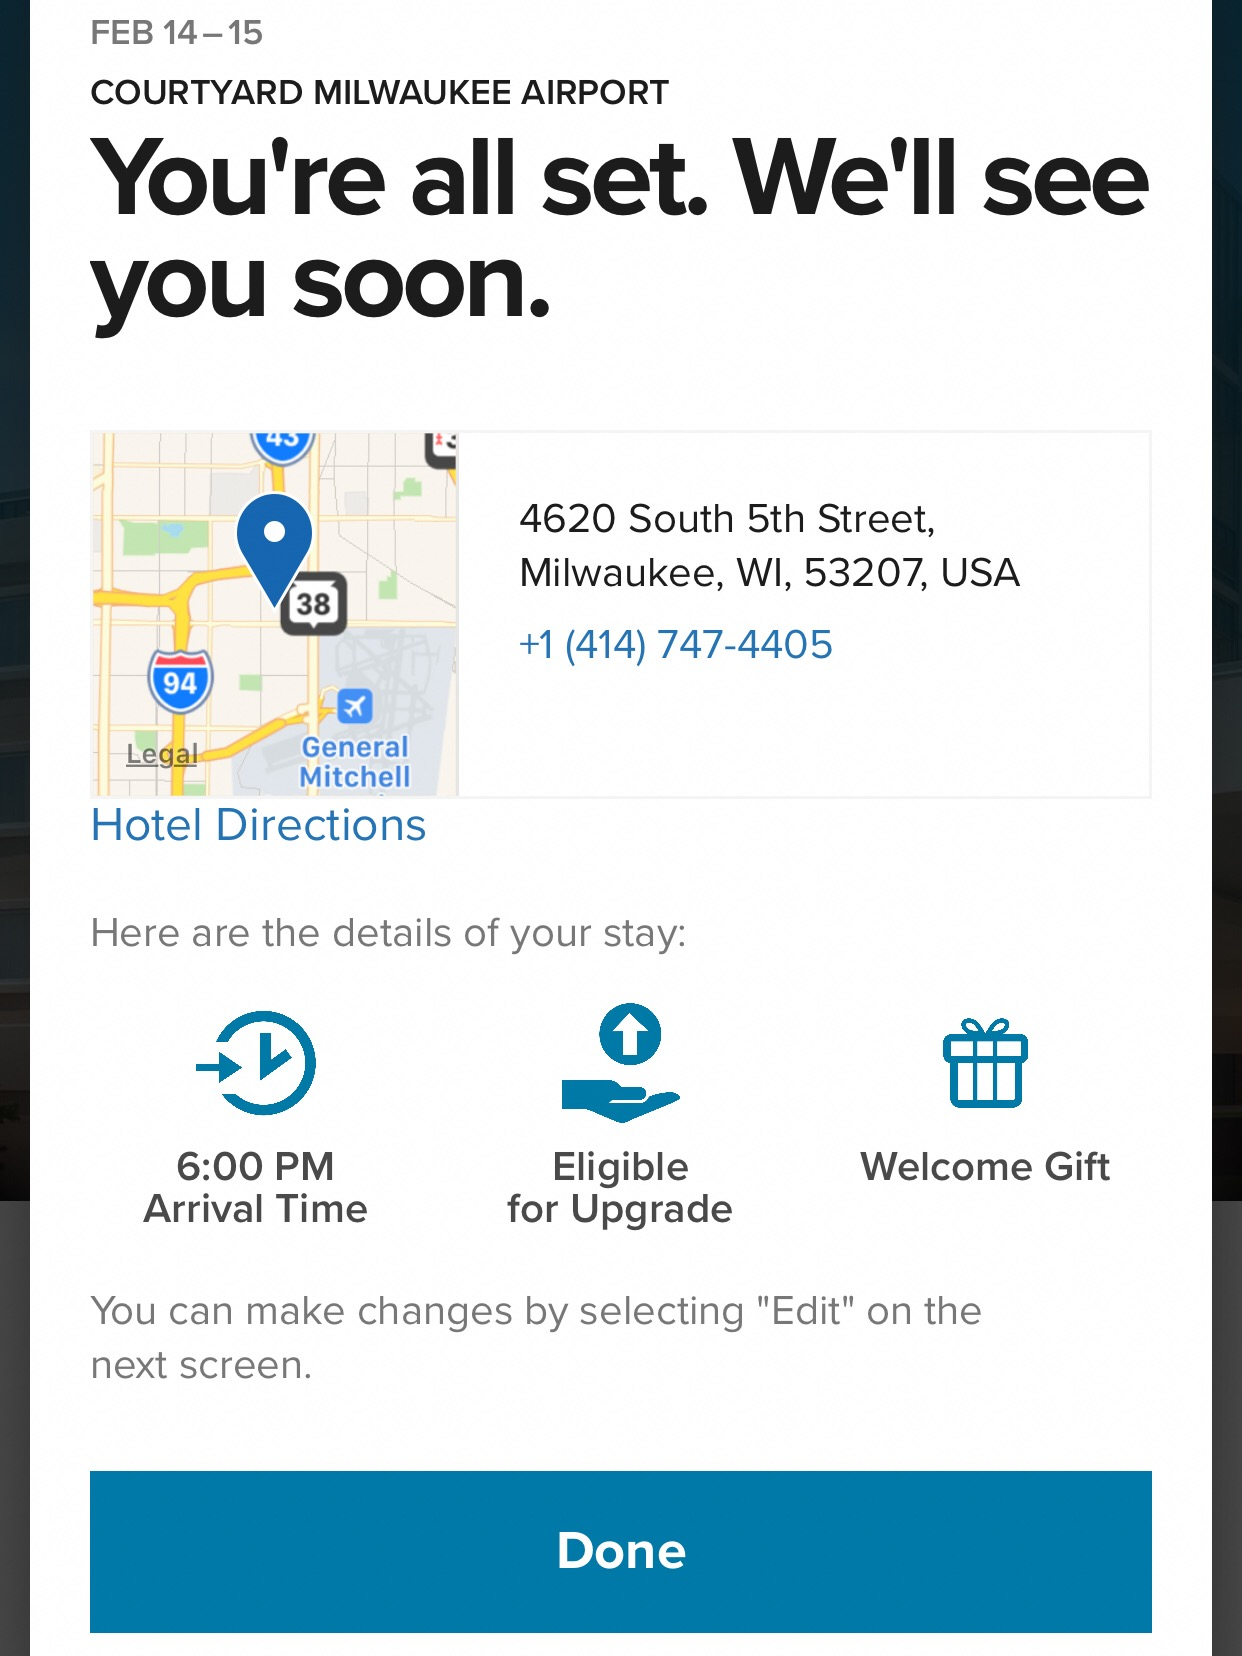 This is the confirmation screen after you finish the check-in process.